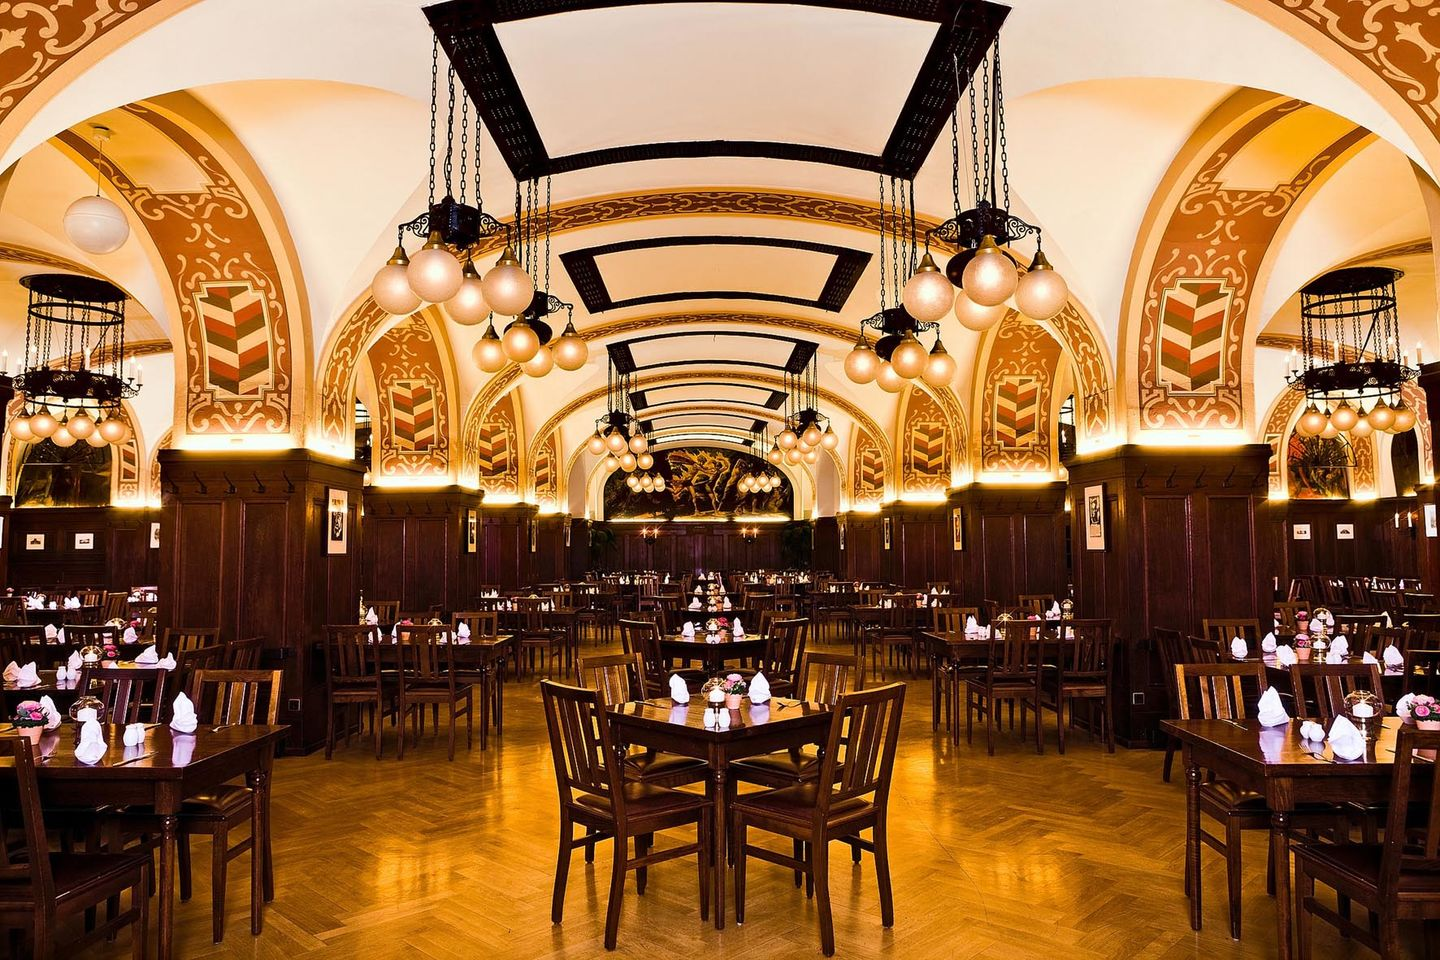 Top 5 Cafes Restaurants With A Long History In Leipzig Hotelfriend Blog